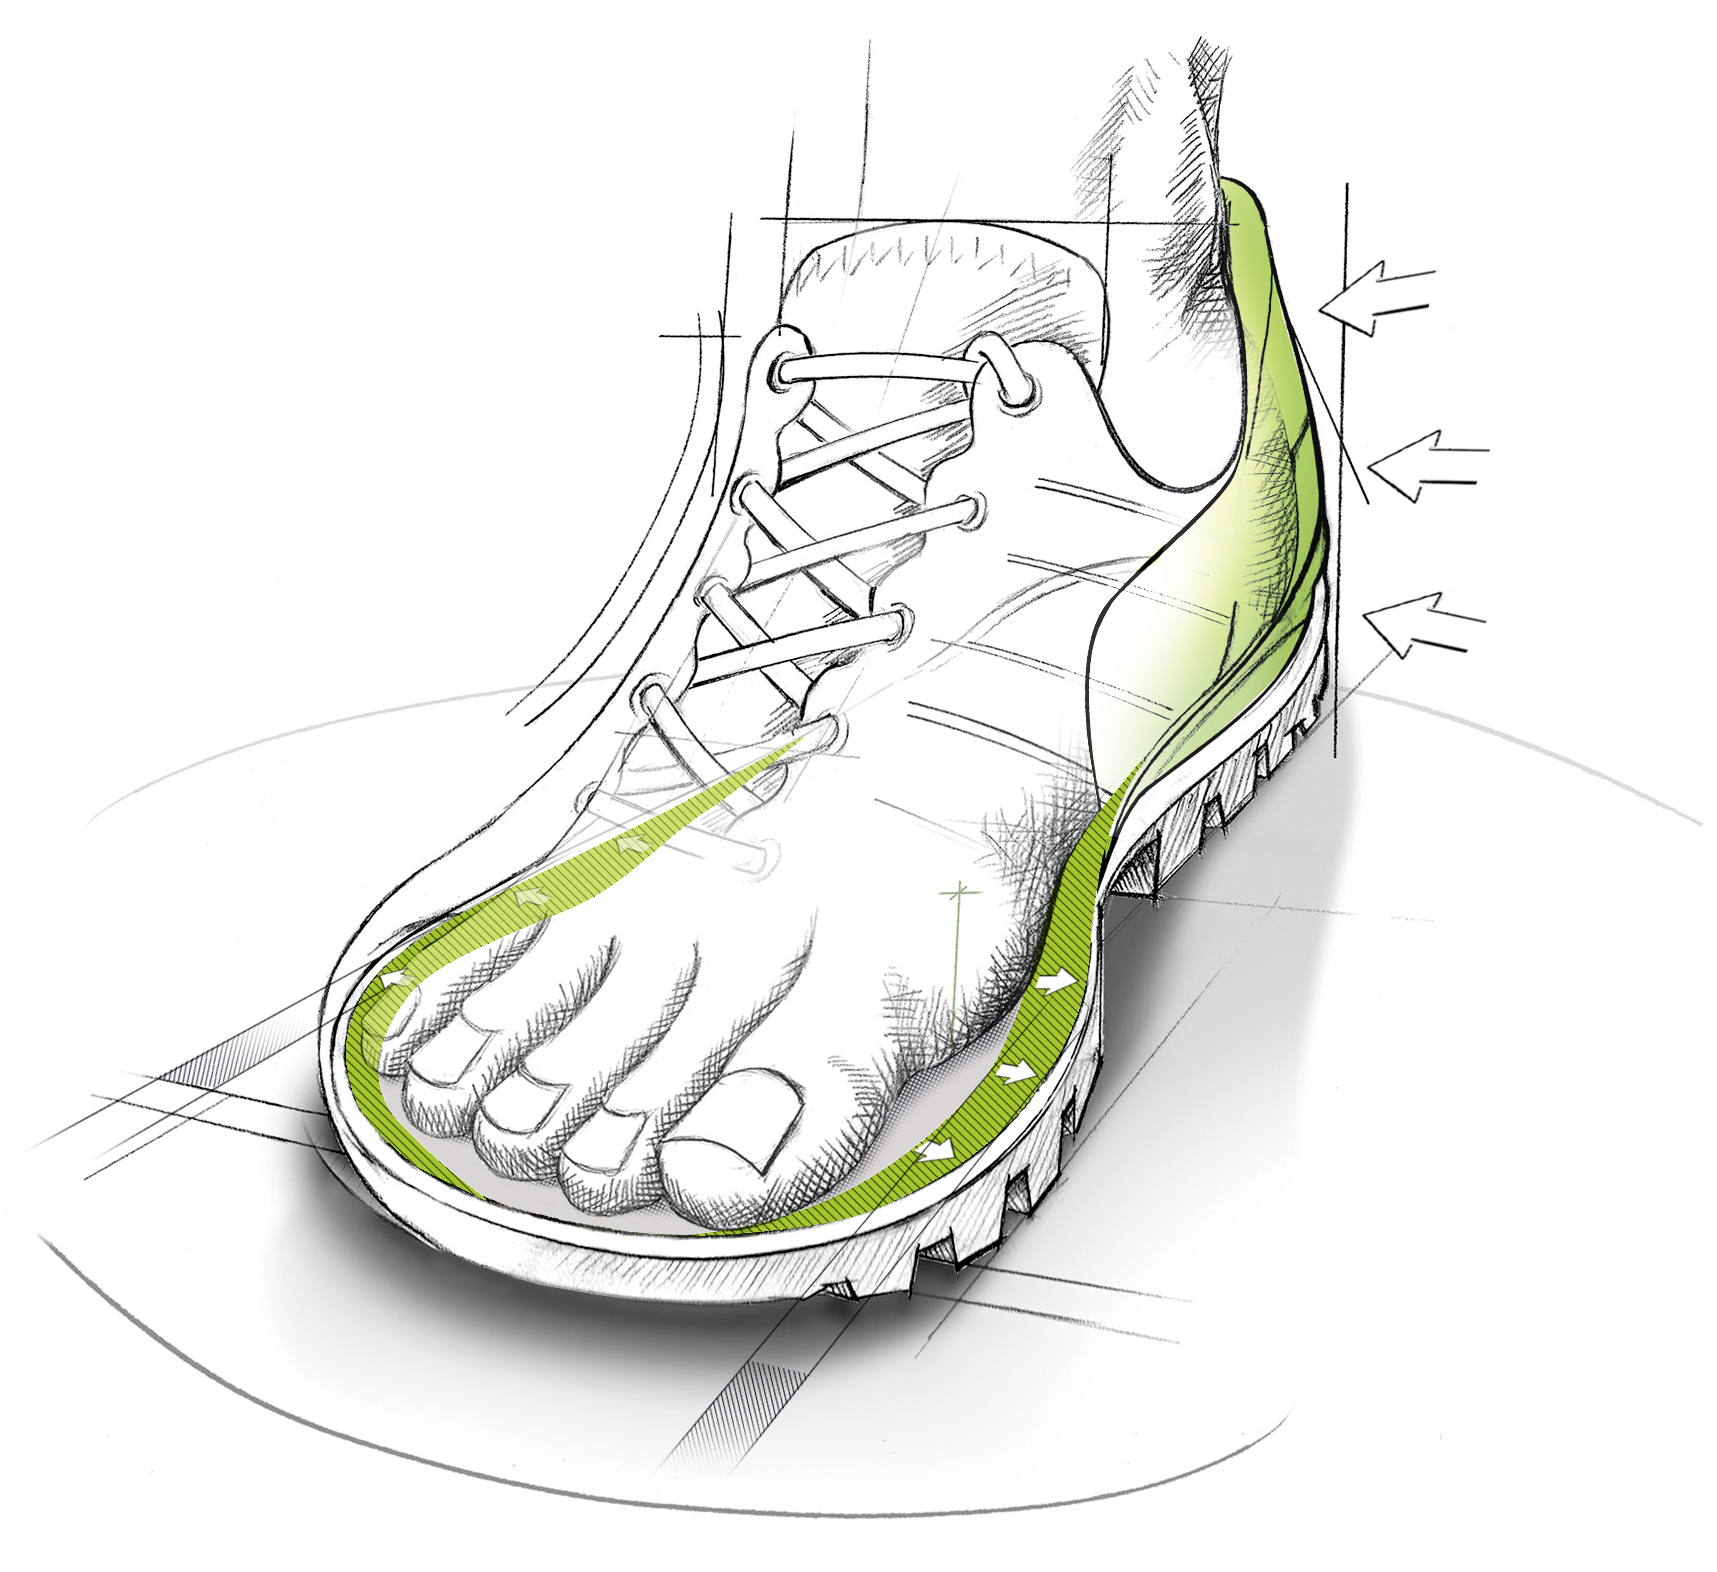 Comfort fit® | Meindl - Shoes For Actives